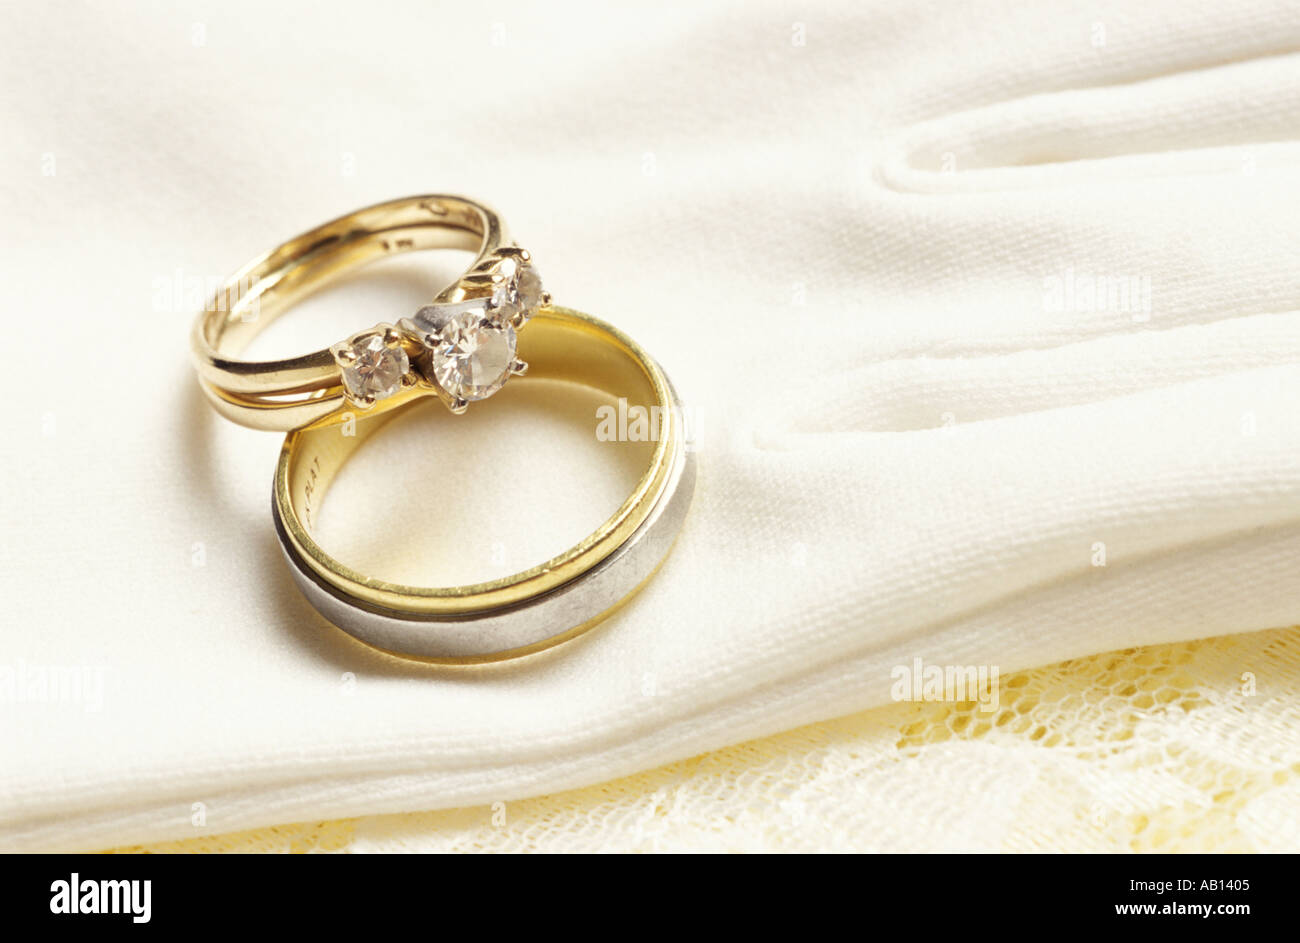 Wedding rings closeup - Stock Image